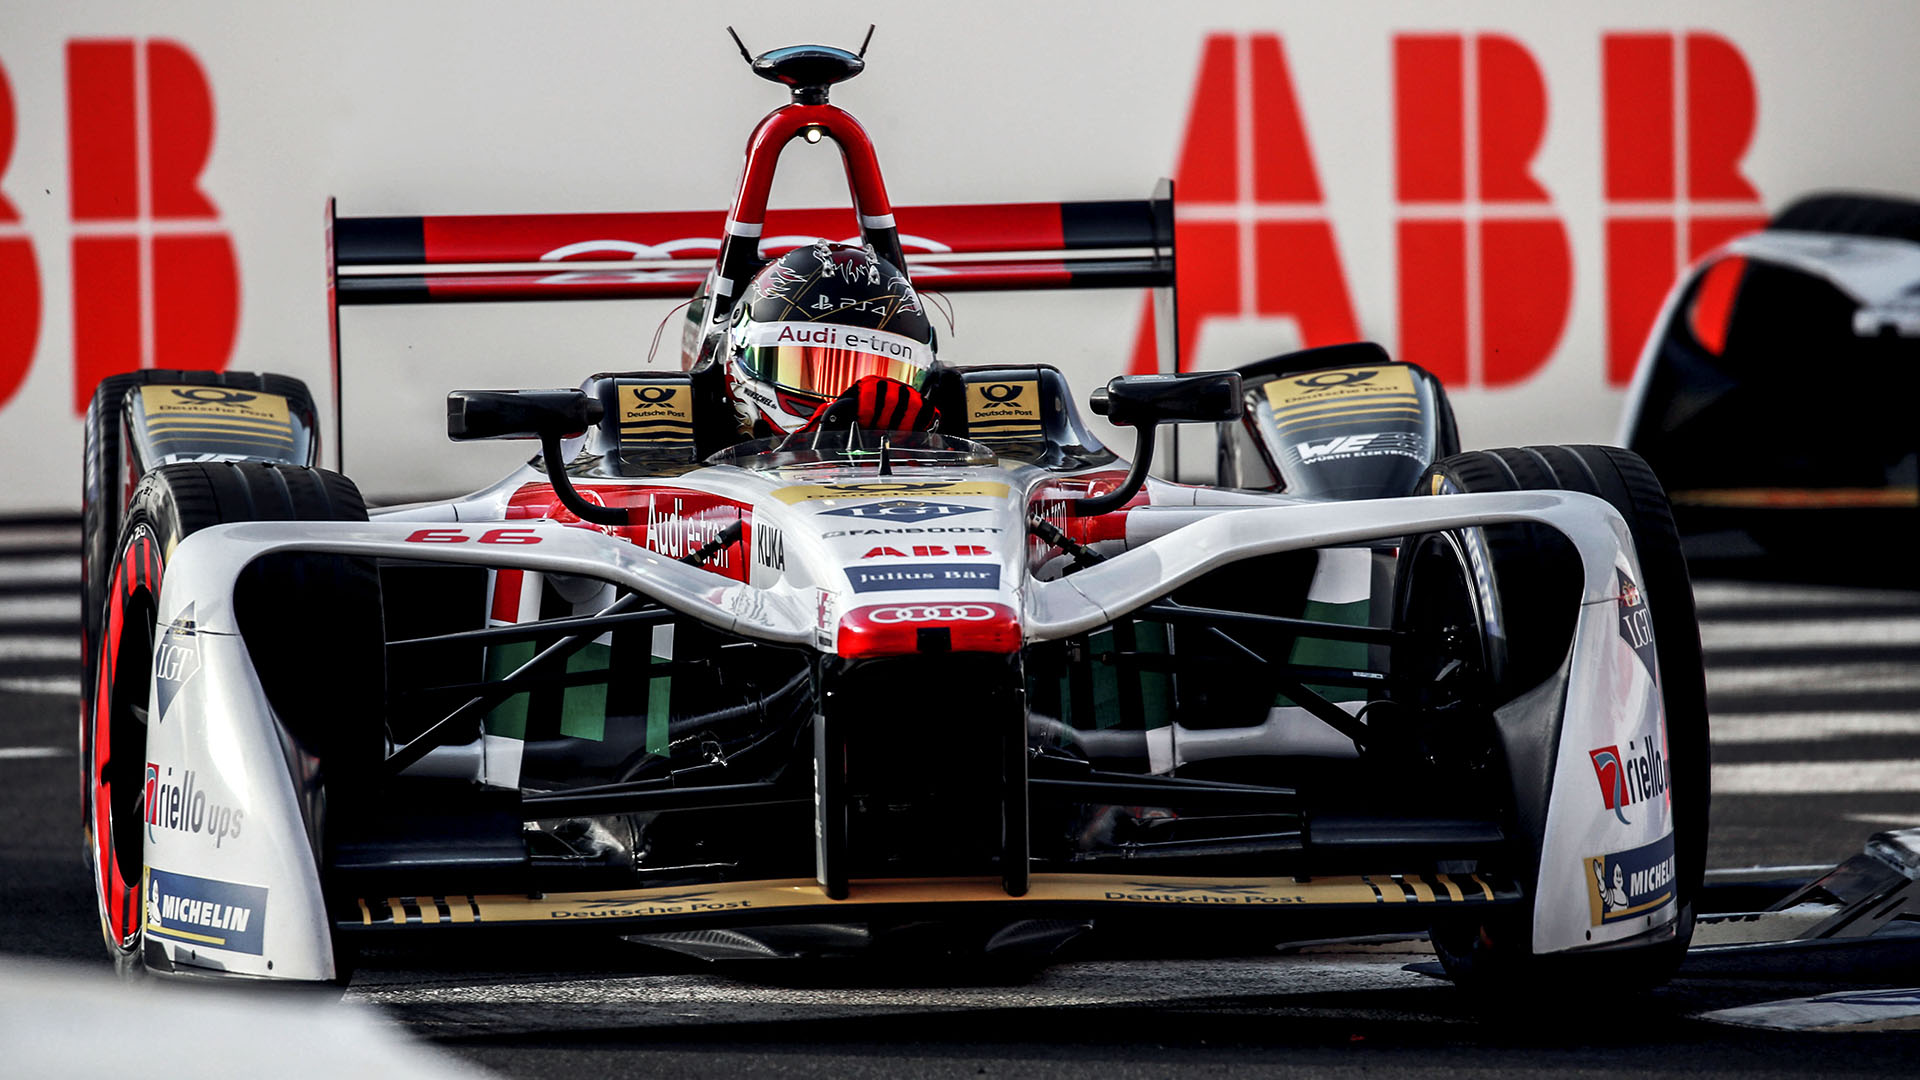 Audi e-tron FE04 on the racetrack